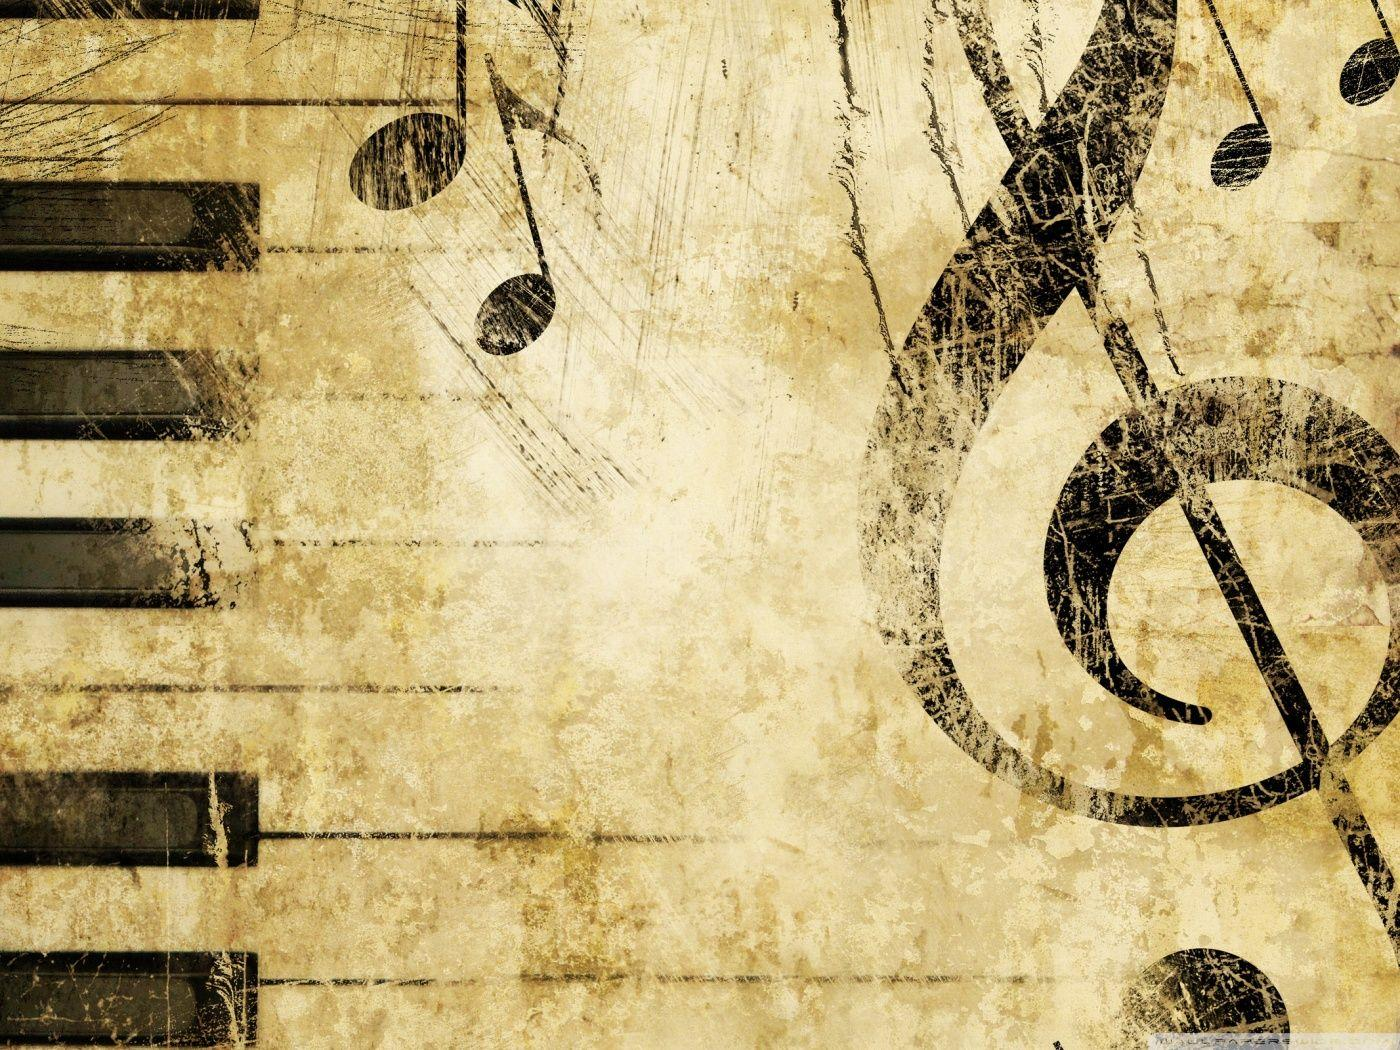 Old Music Score 4k Hd Desktop Wallpaper For 4k Ultra Hd Tv: Choir Wallpapers